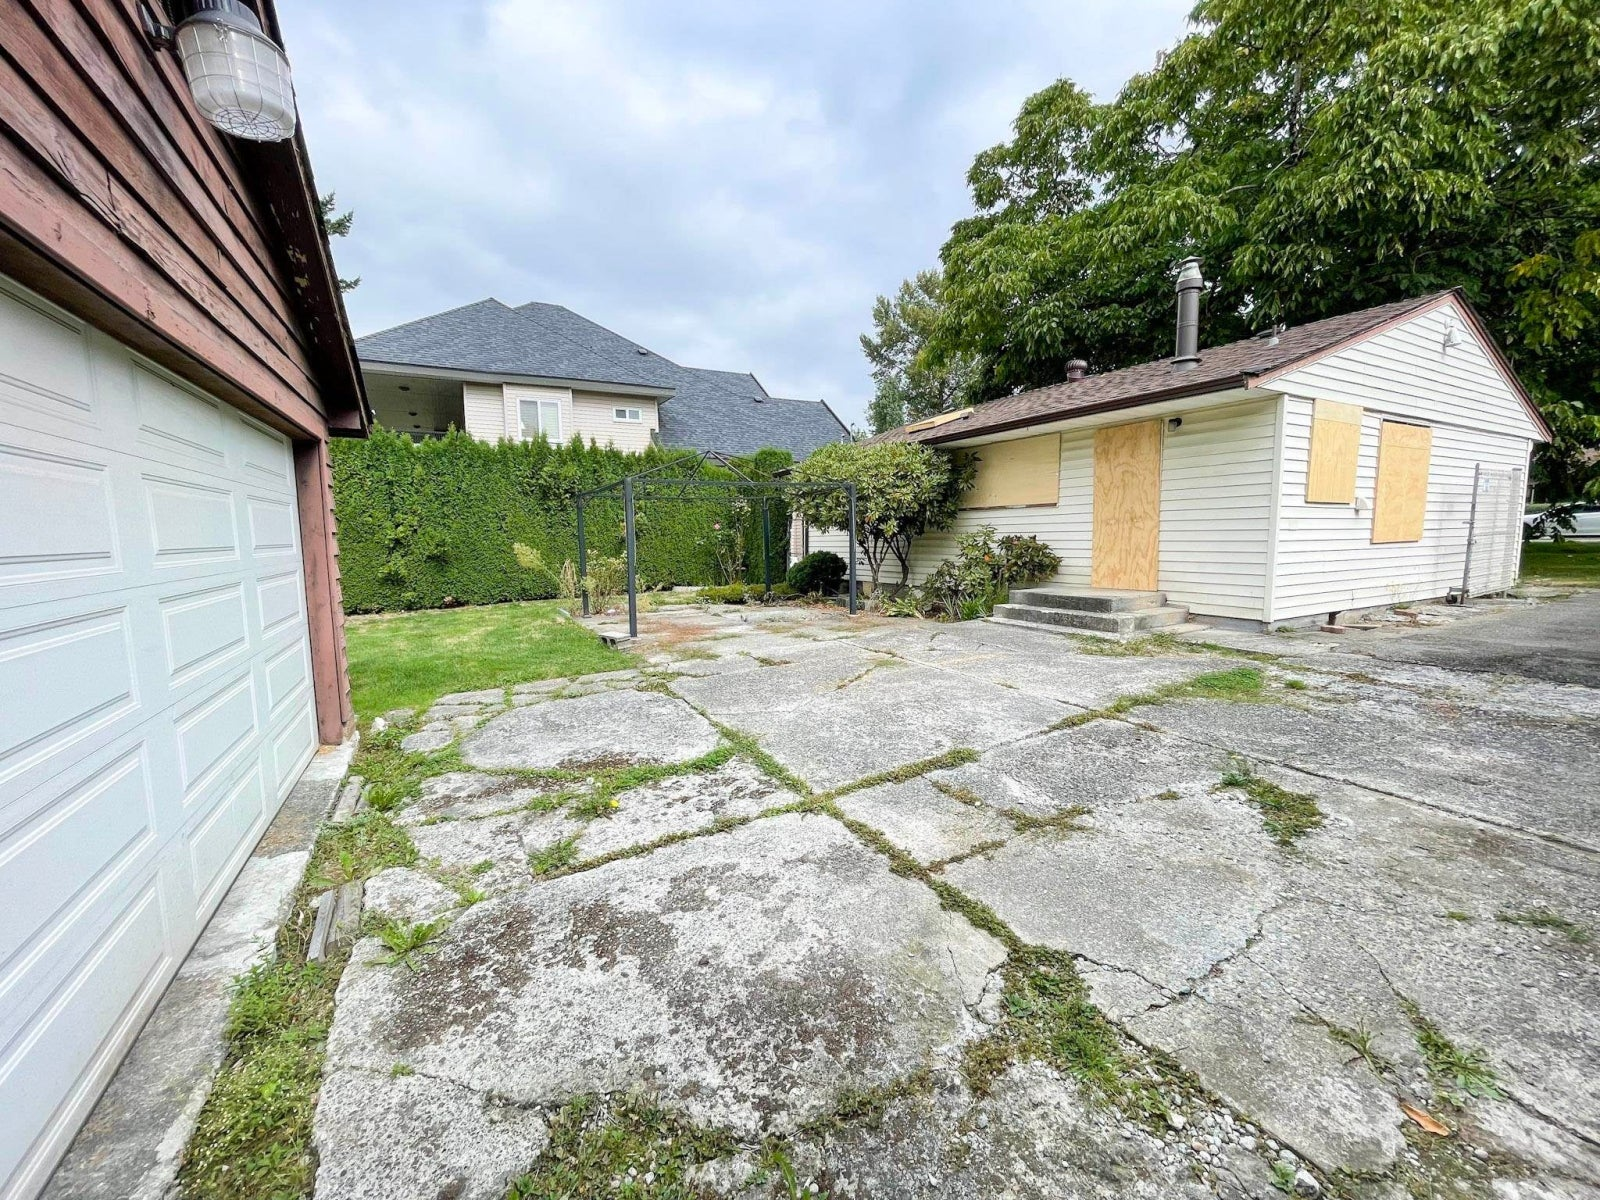 10871 139A STREET - Bolivar Heights House/Single Family for sale, 2 Bedrooms (R2616531) #4